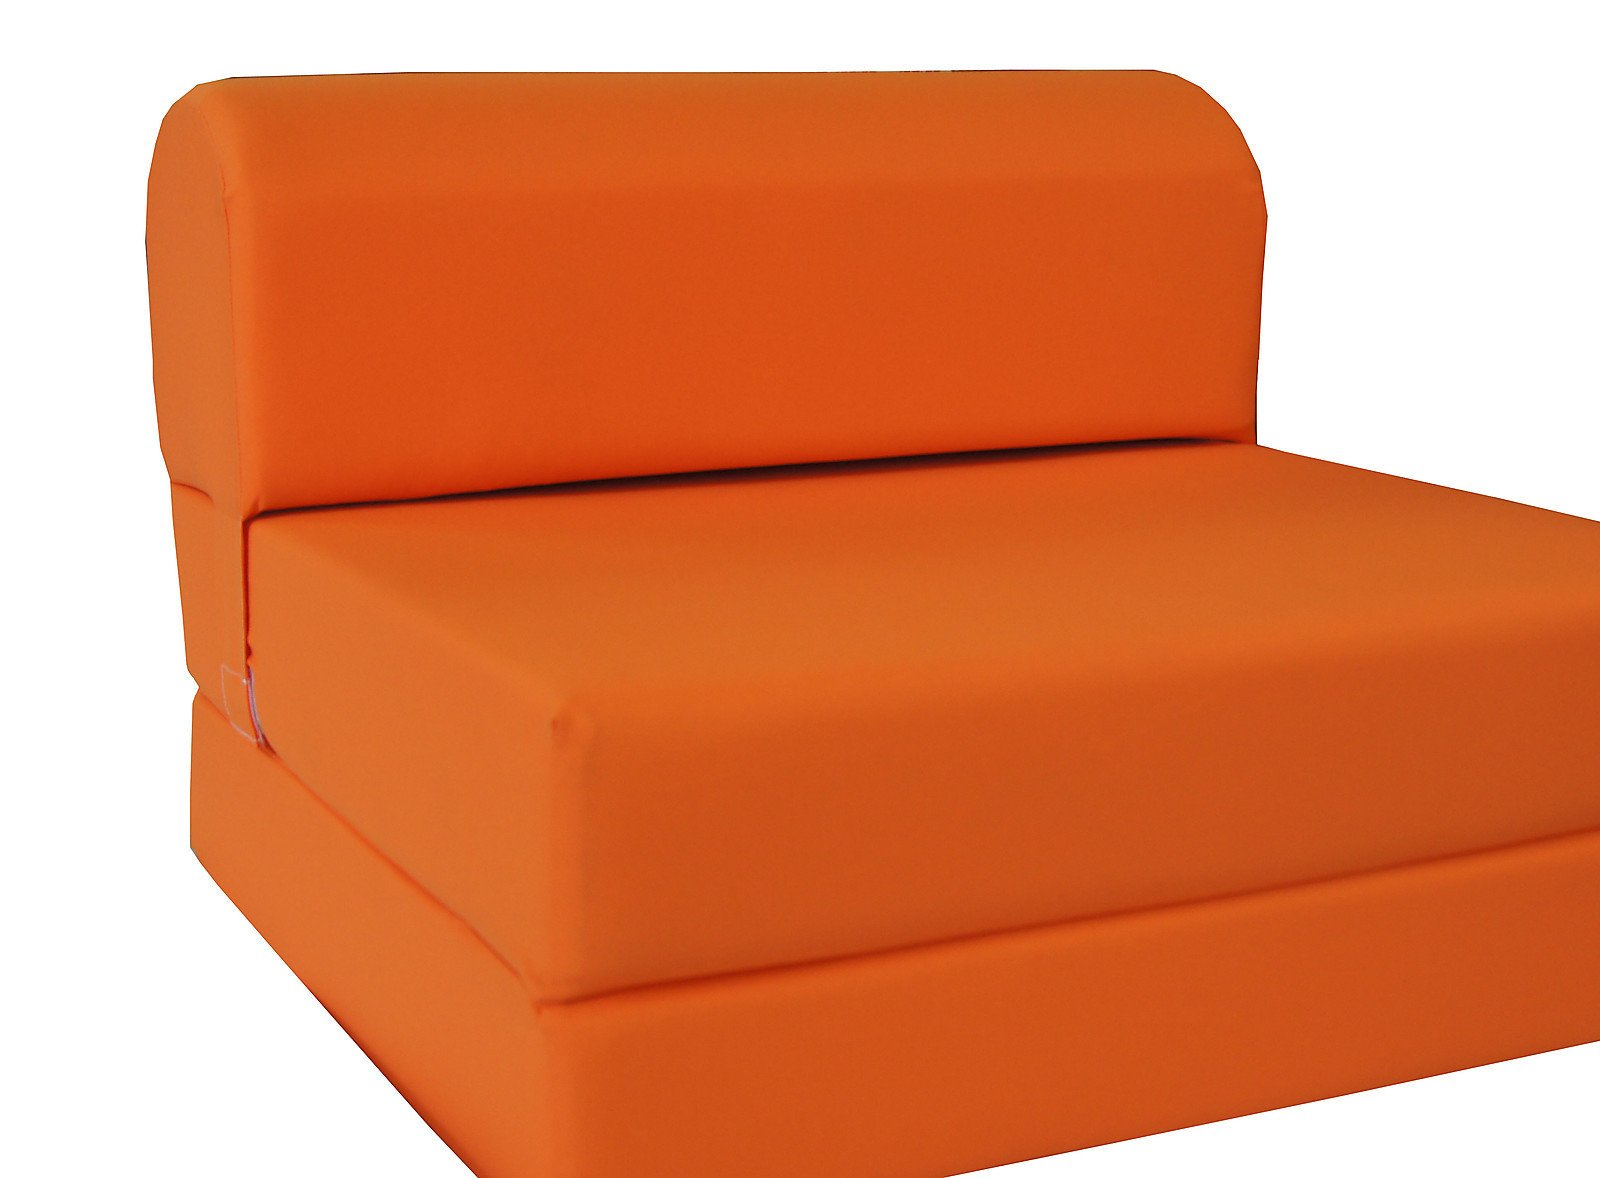 Orange Sleeper Chair Folding Foam Bed Sized 6'' Thick X 32'' Wide X 70'' Long, Studio Guest Foldable Chair Beds, Foam Sofa, Couch, High Density Foam 1.8 Pounds. by D&D Futon Furniture